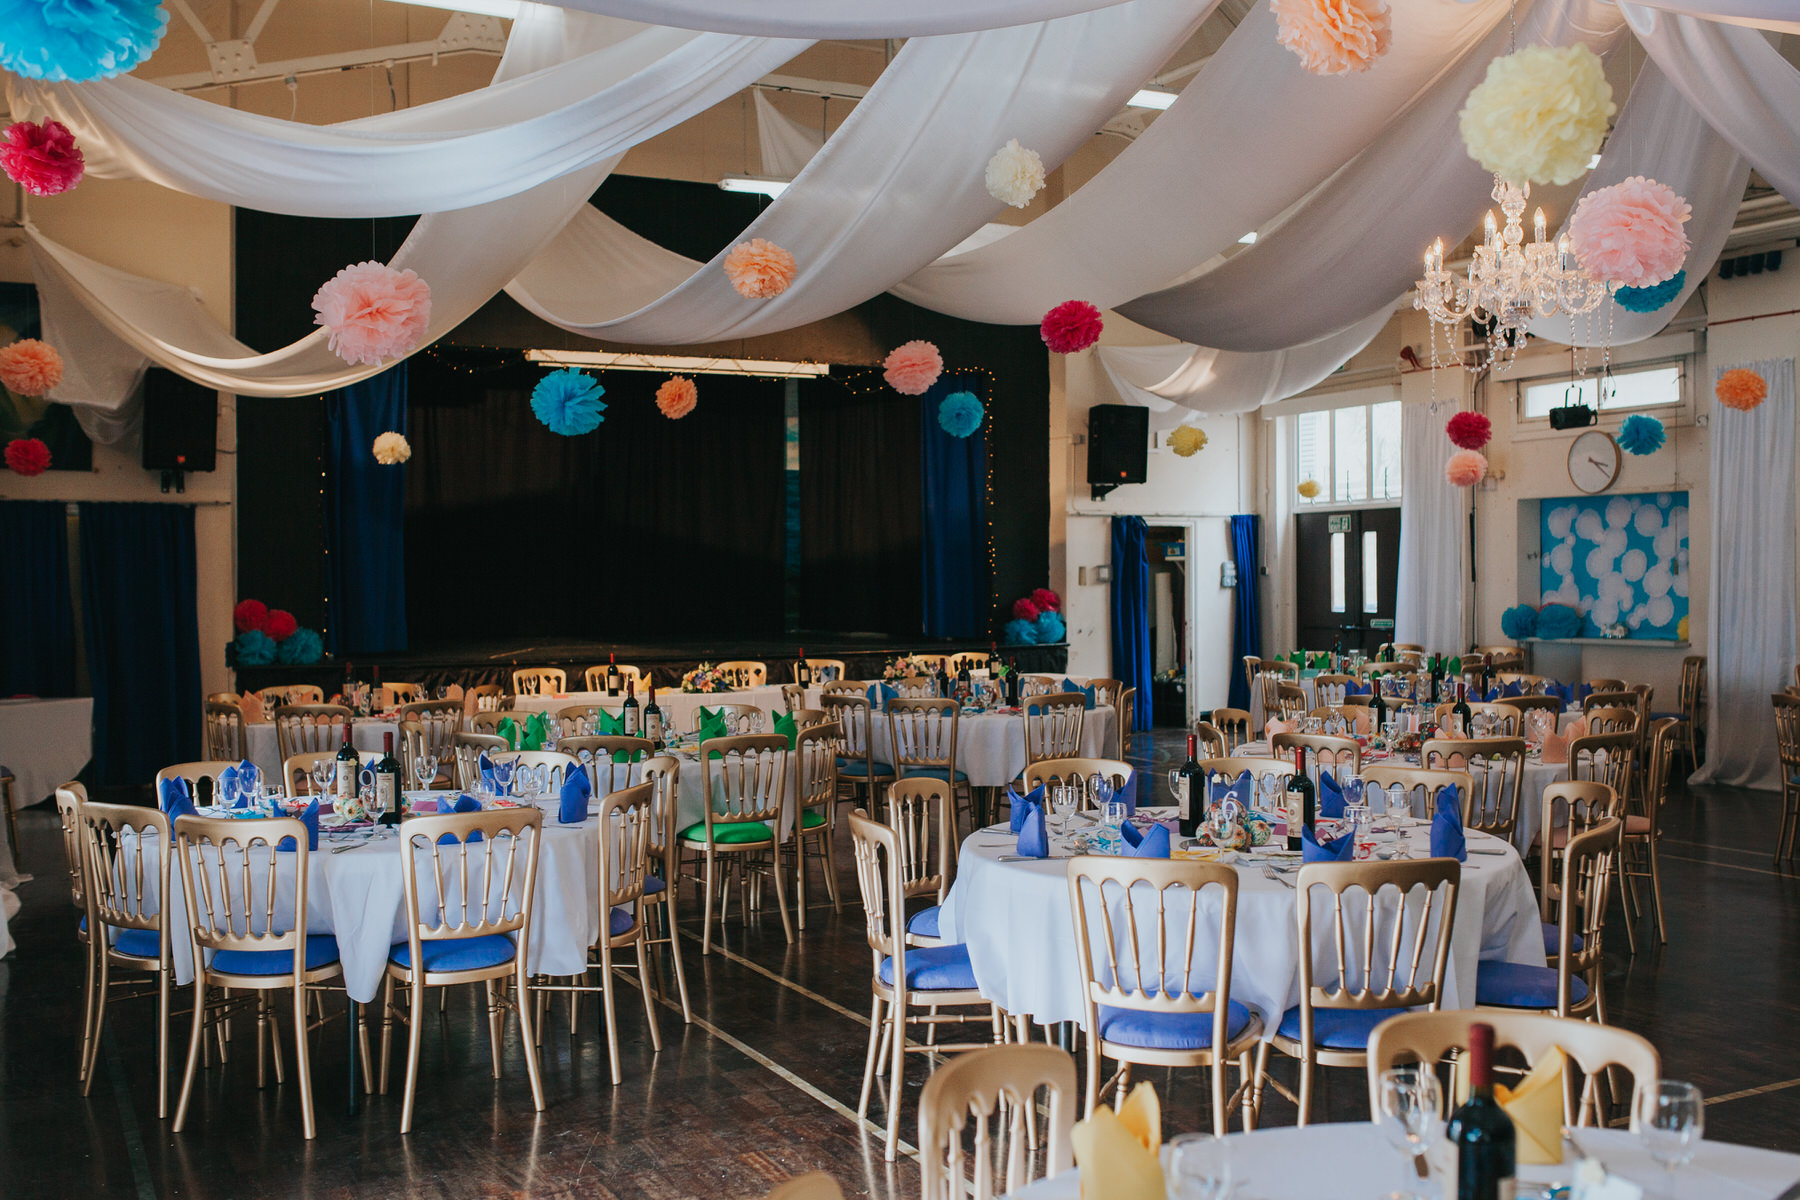 209 school hall colourful pom poms wedding reception decor.jpg